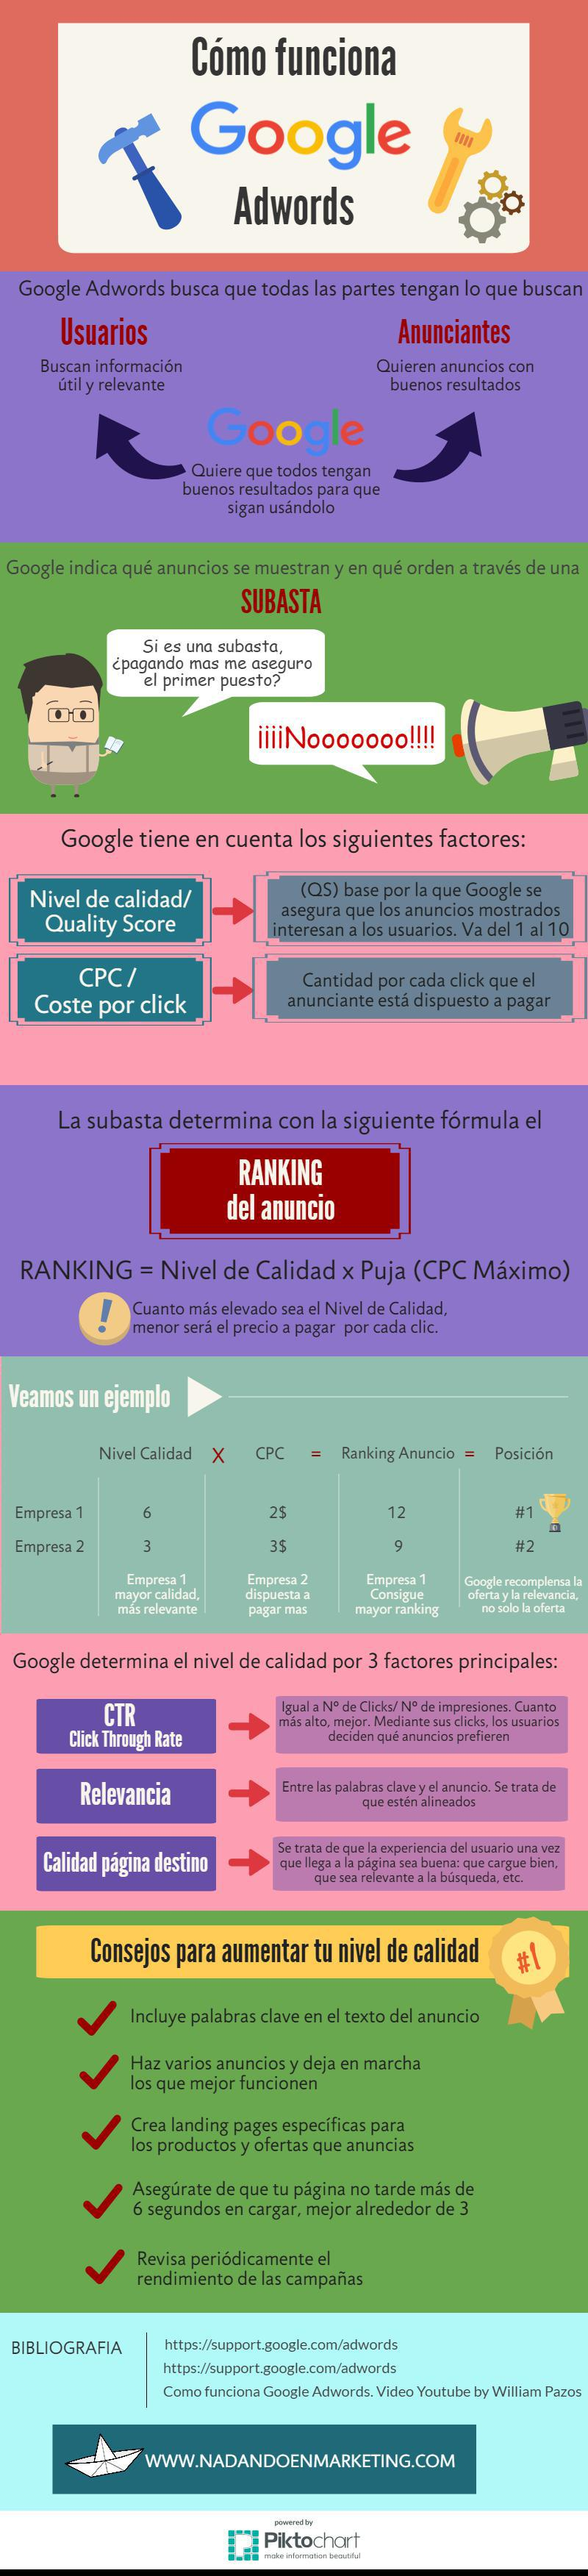 google-adwords-infografia